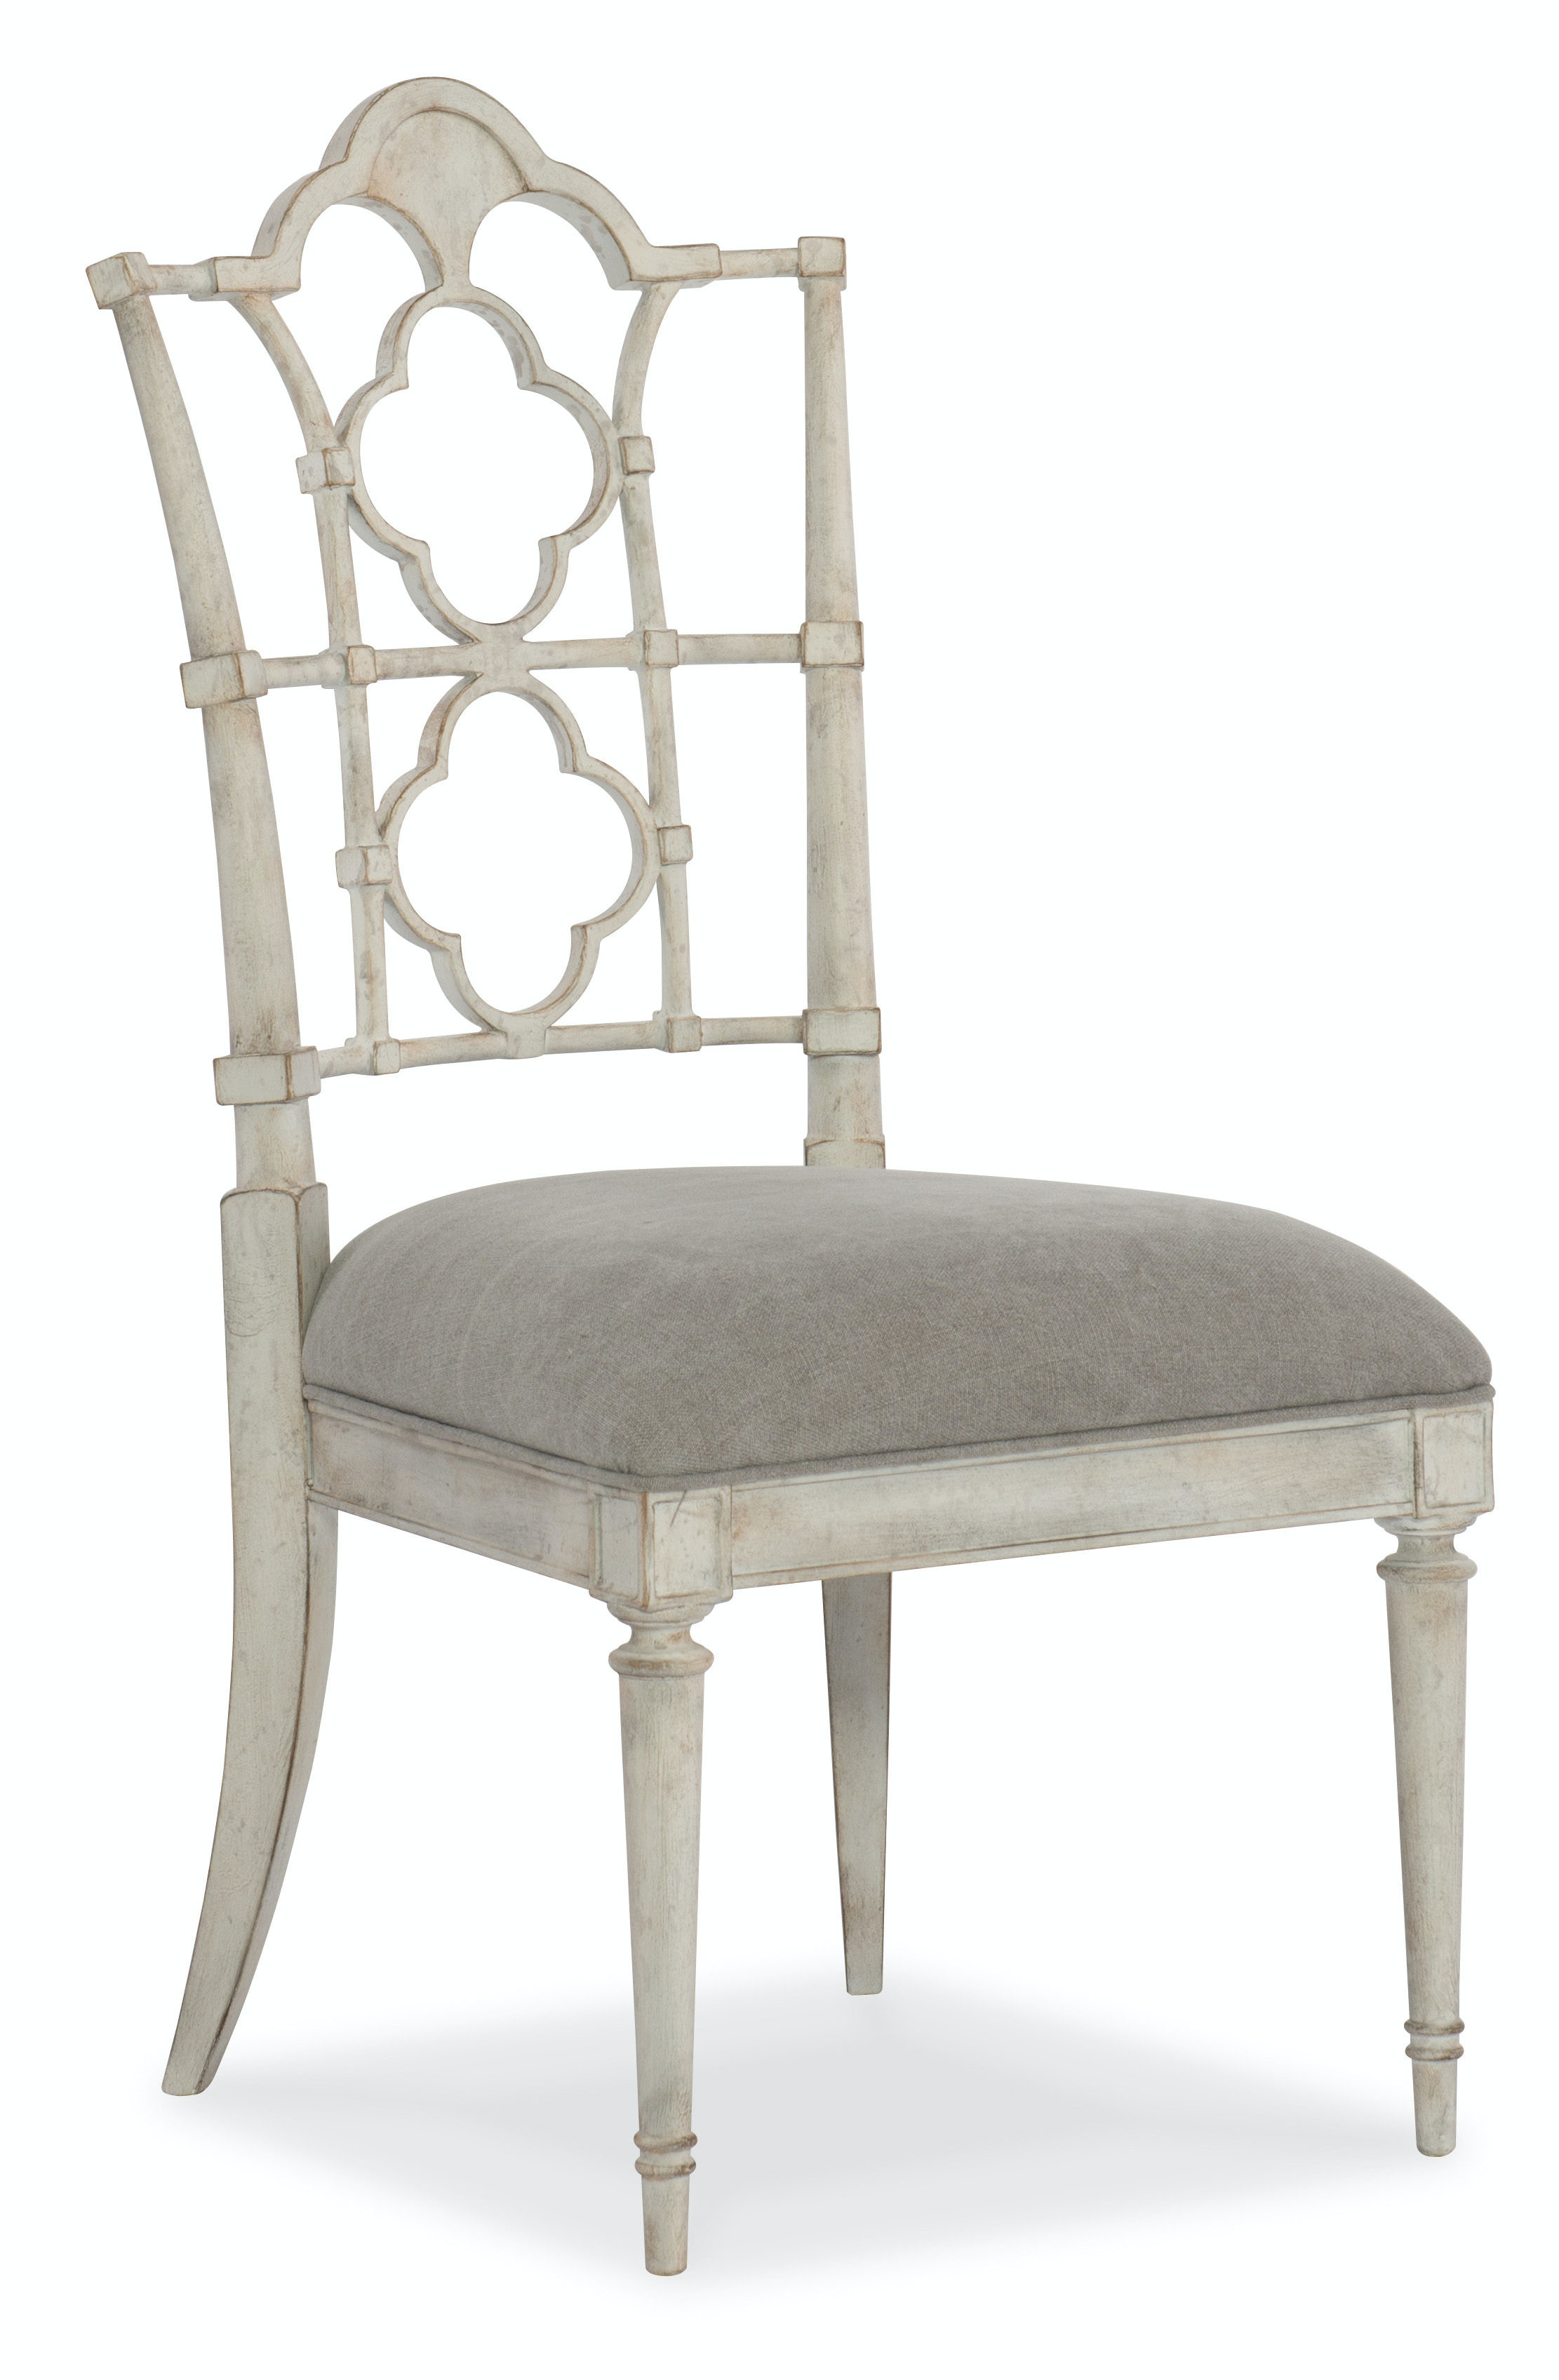 Hooker Furniture Arabella Side Dining Chair 1610 75510 WH